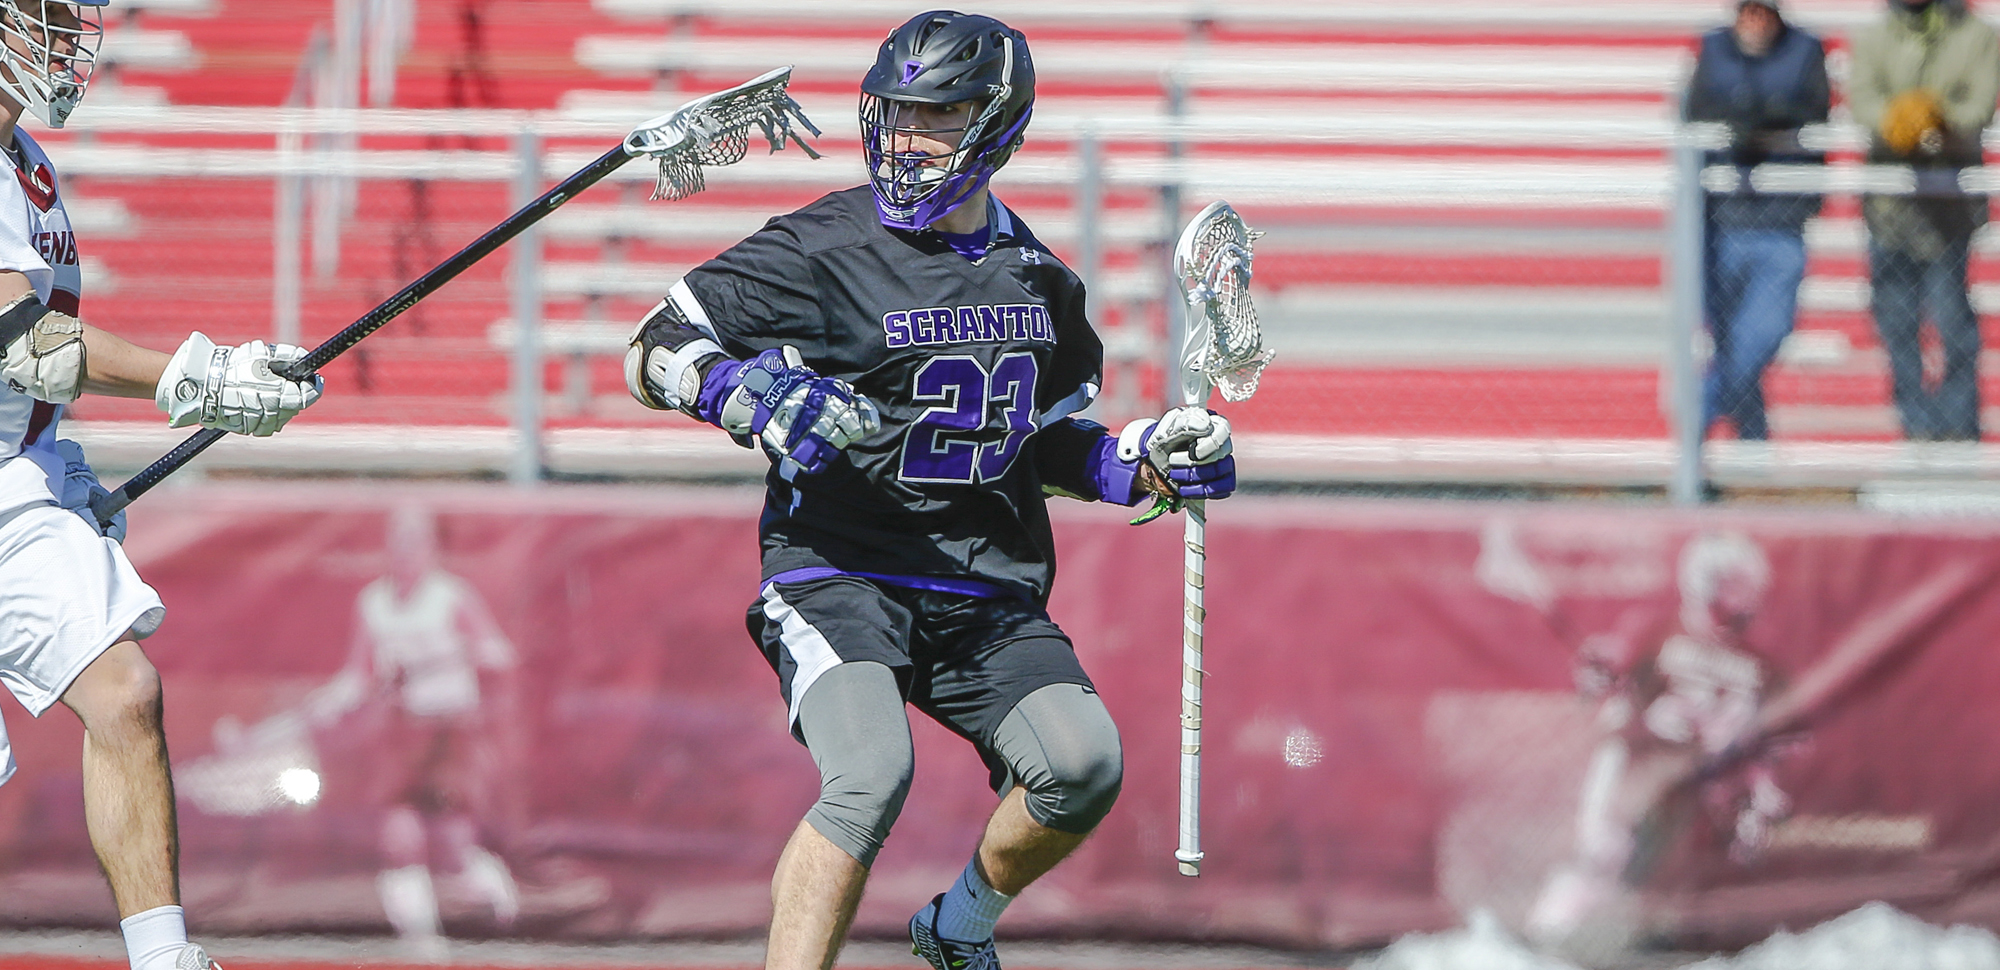 Senior attackman Jake Haimson and the Royals were picked third in the Landmark Conference preseason poll.